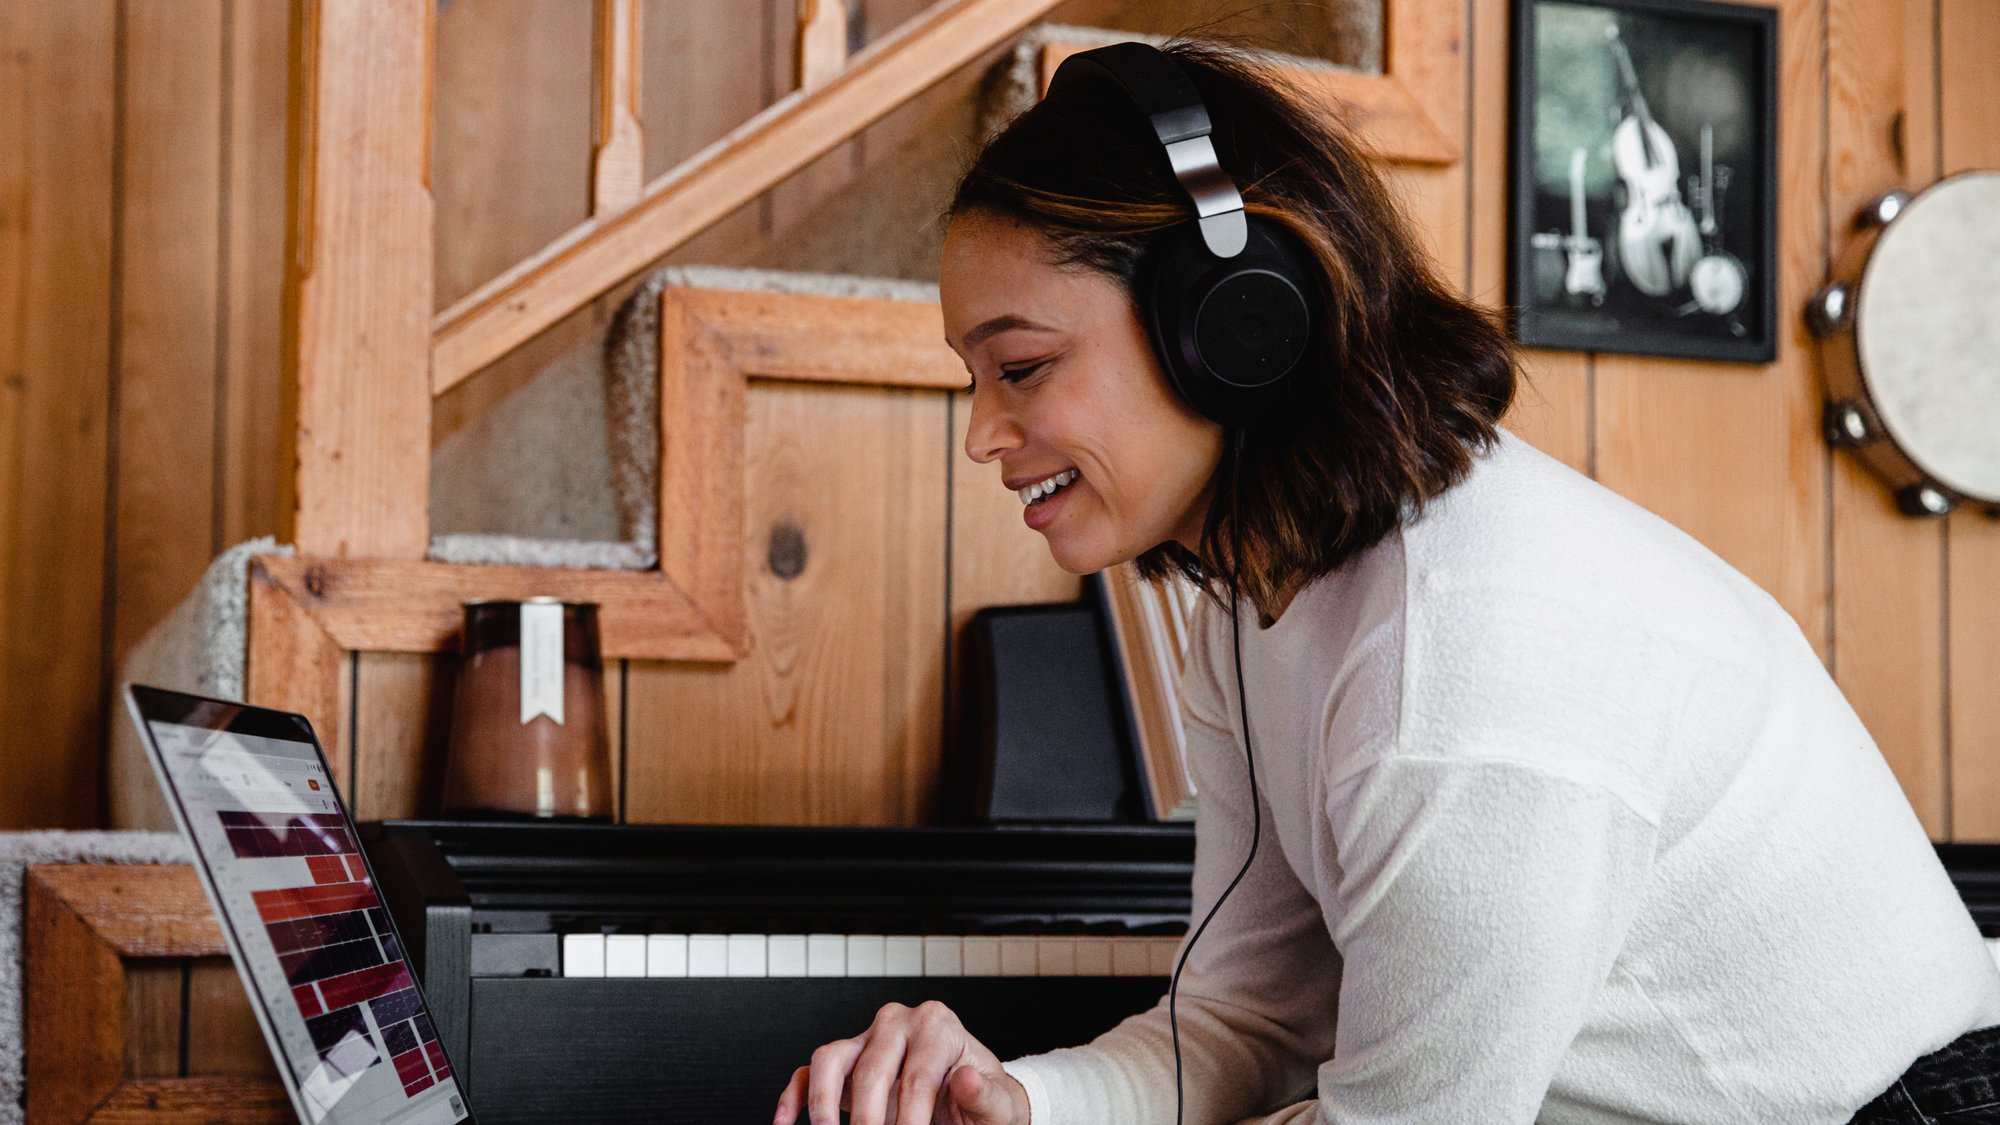 woman looking down at a laptop with headphones on